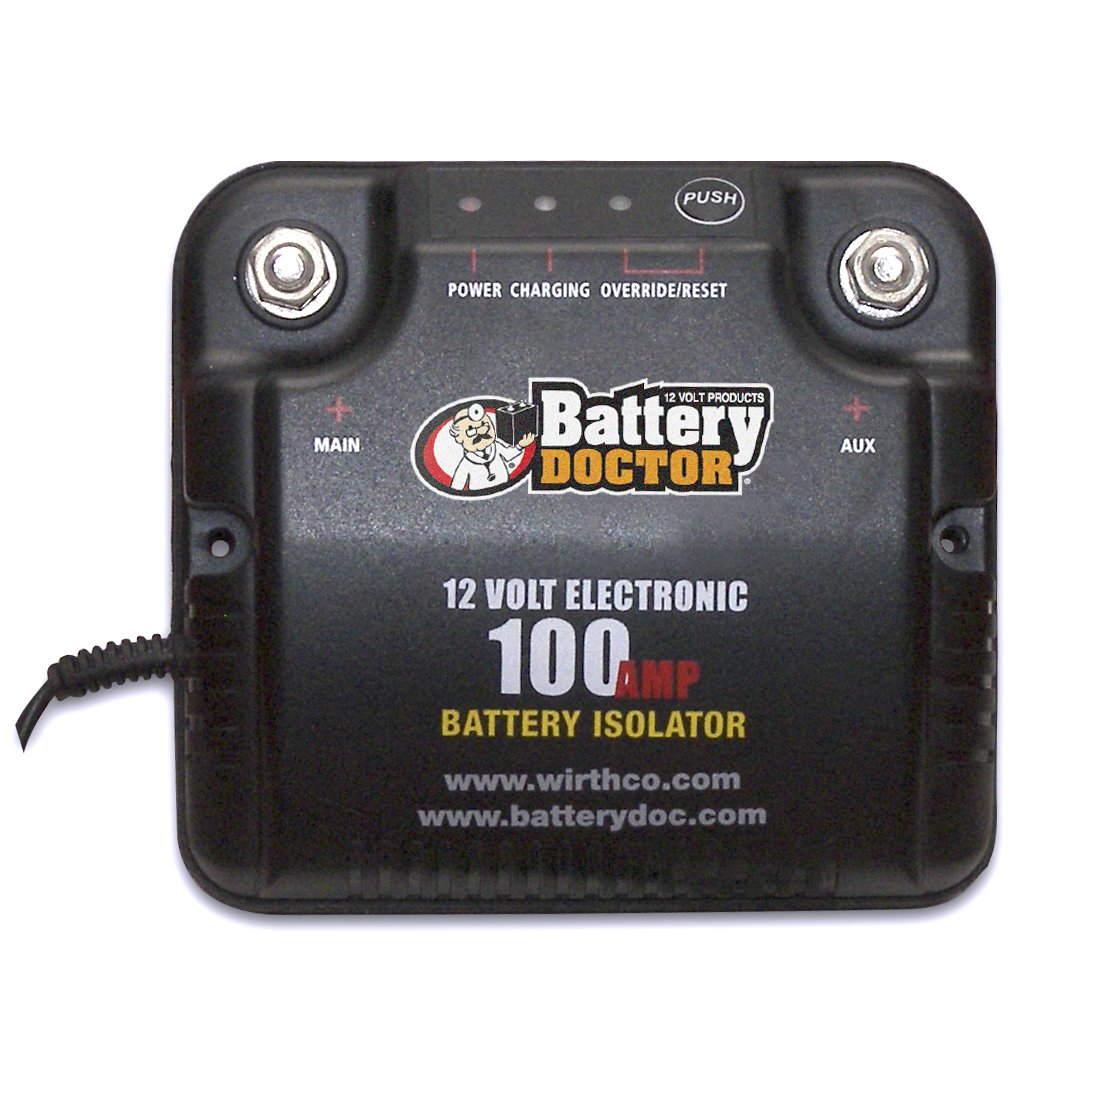 71C7jkFh94L._SL1104_ amazon com wirthco 20090 battery doctor 75 amp 100 amp battery  at gsmx.co